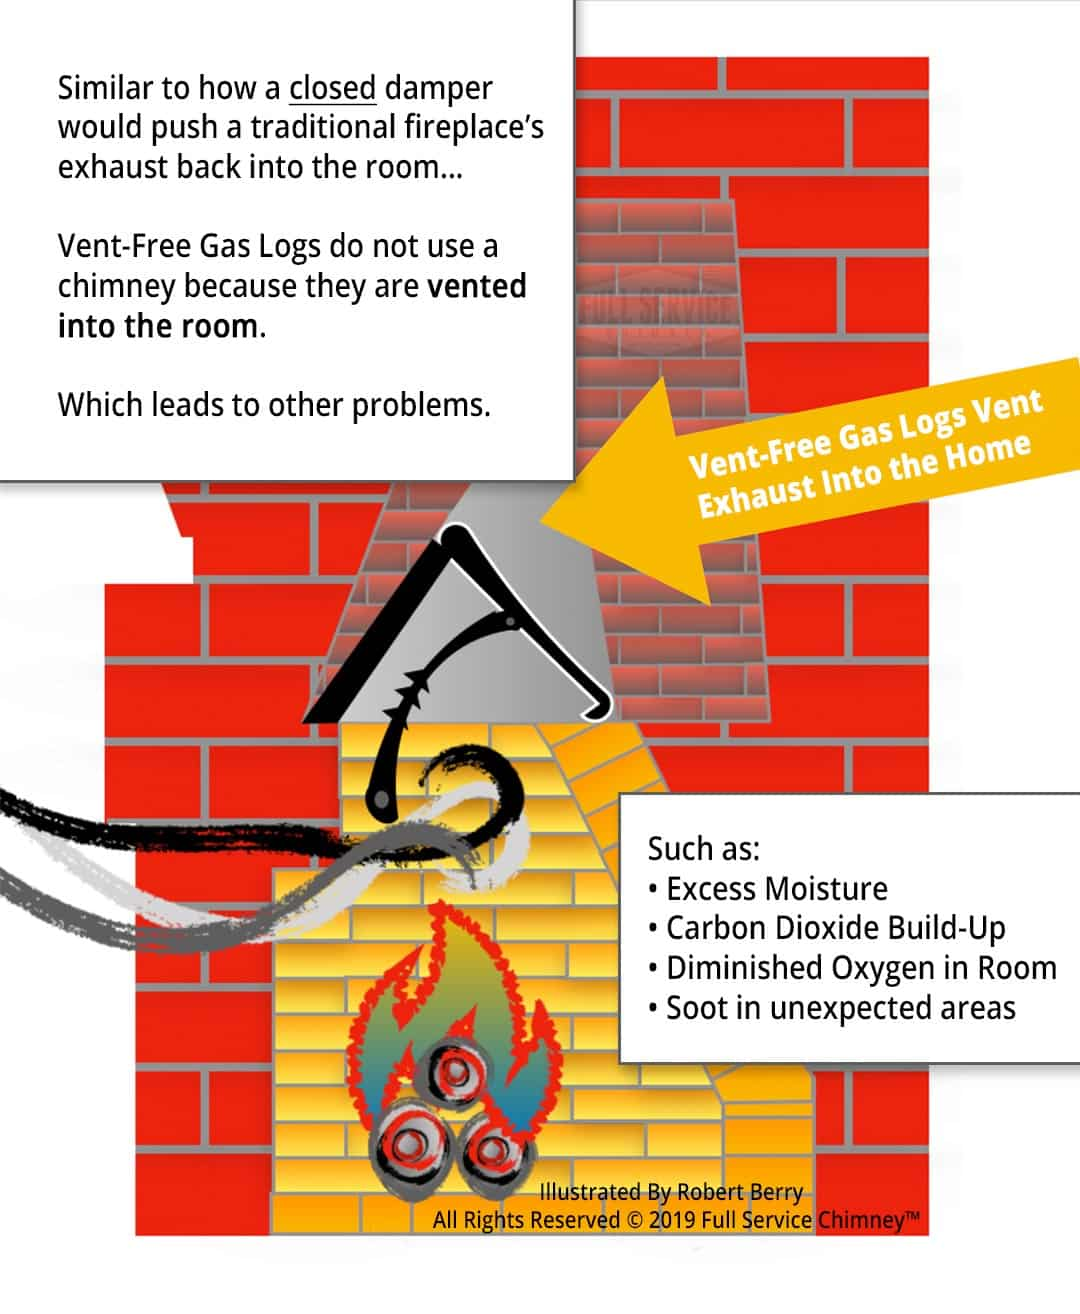 Illustration shows Vent-Free Gas Logs Vent Exhaust Into Home